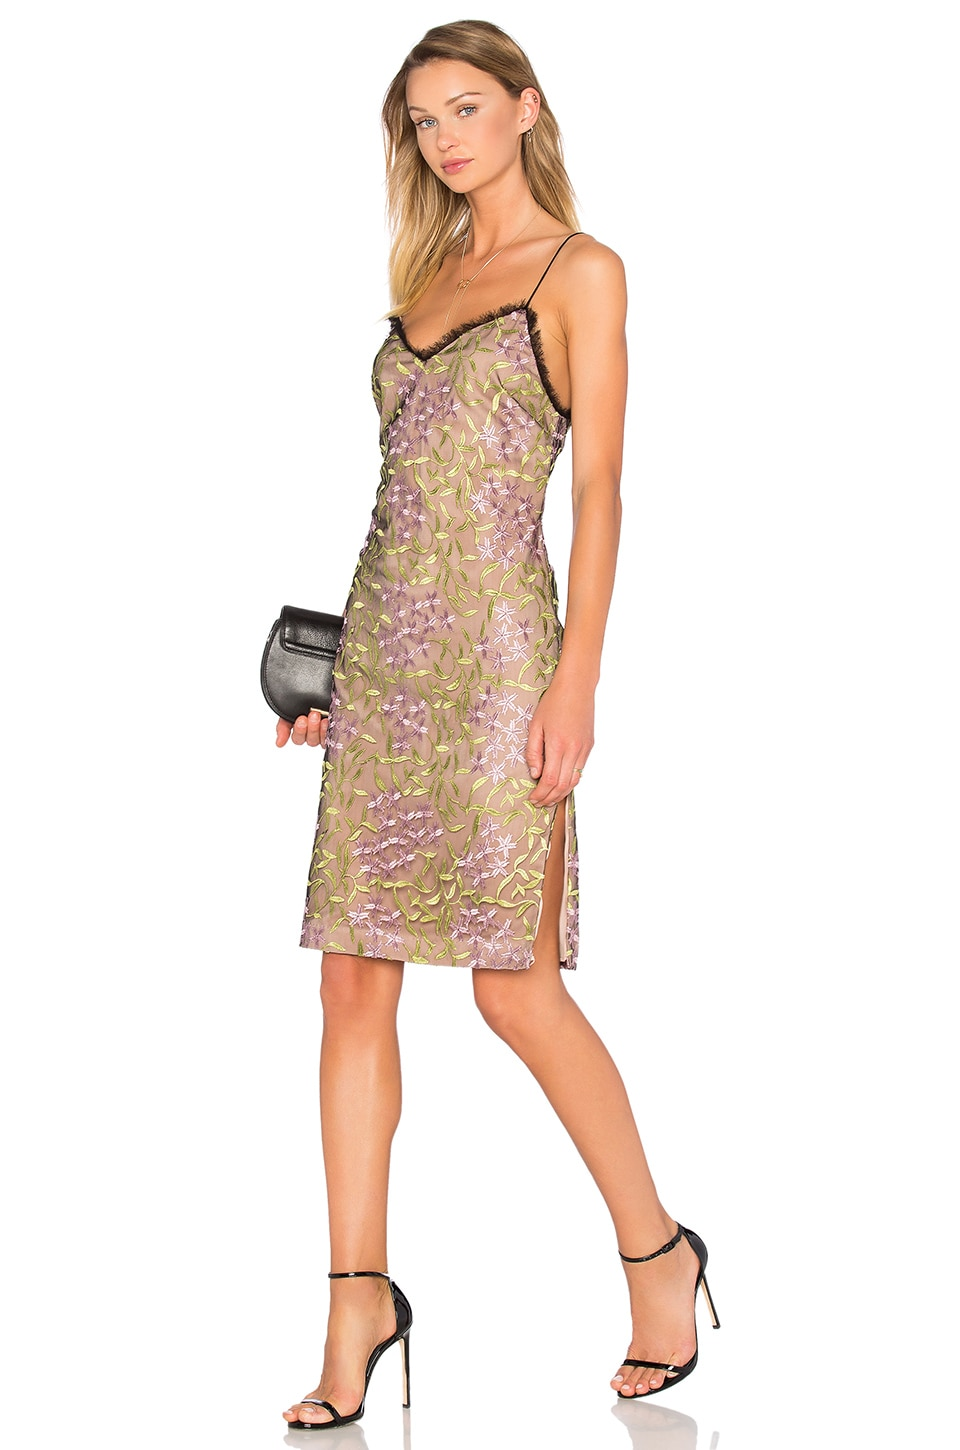 X by NBD Simon Dress in Vineyard